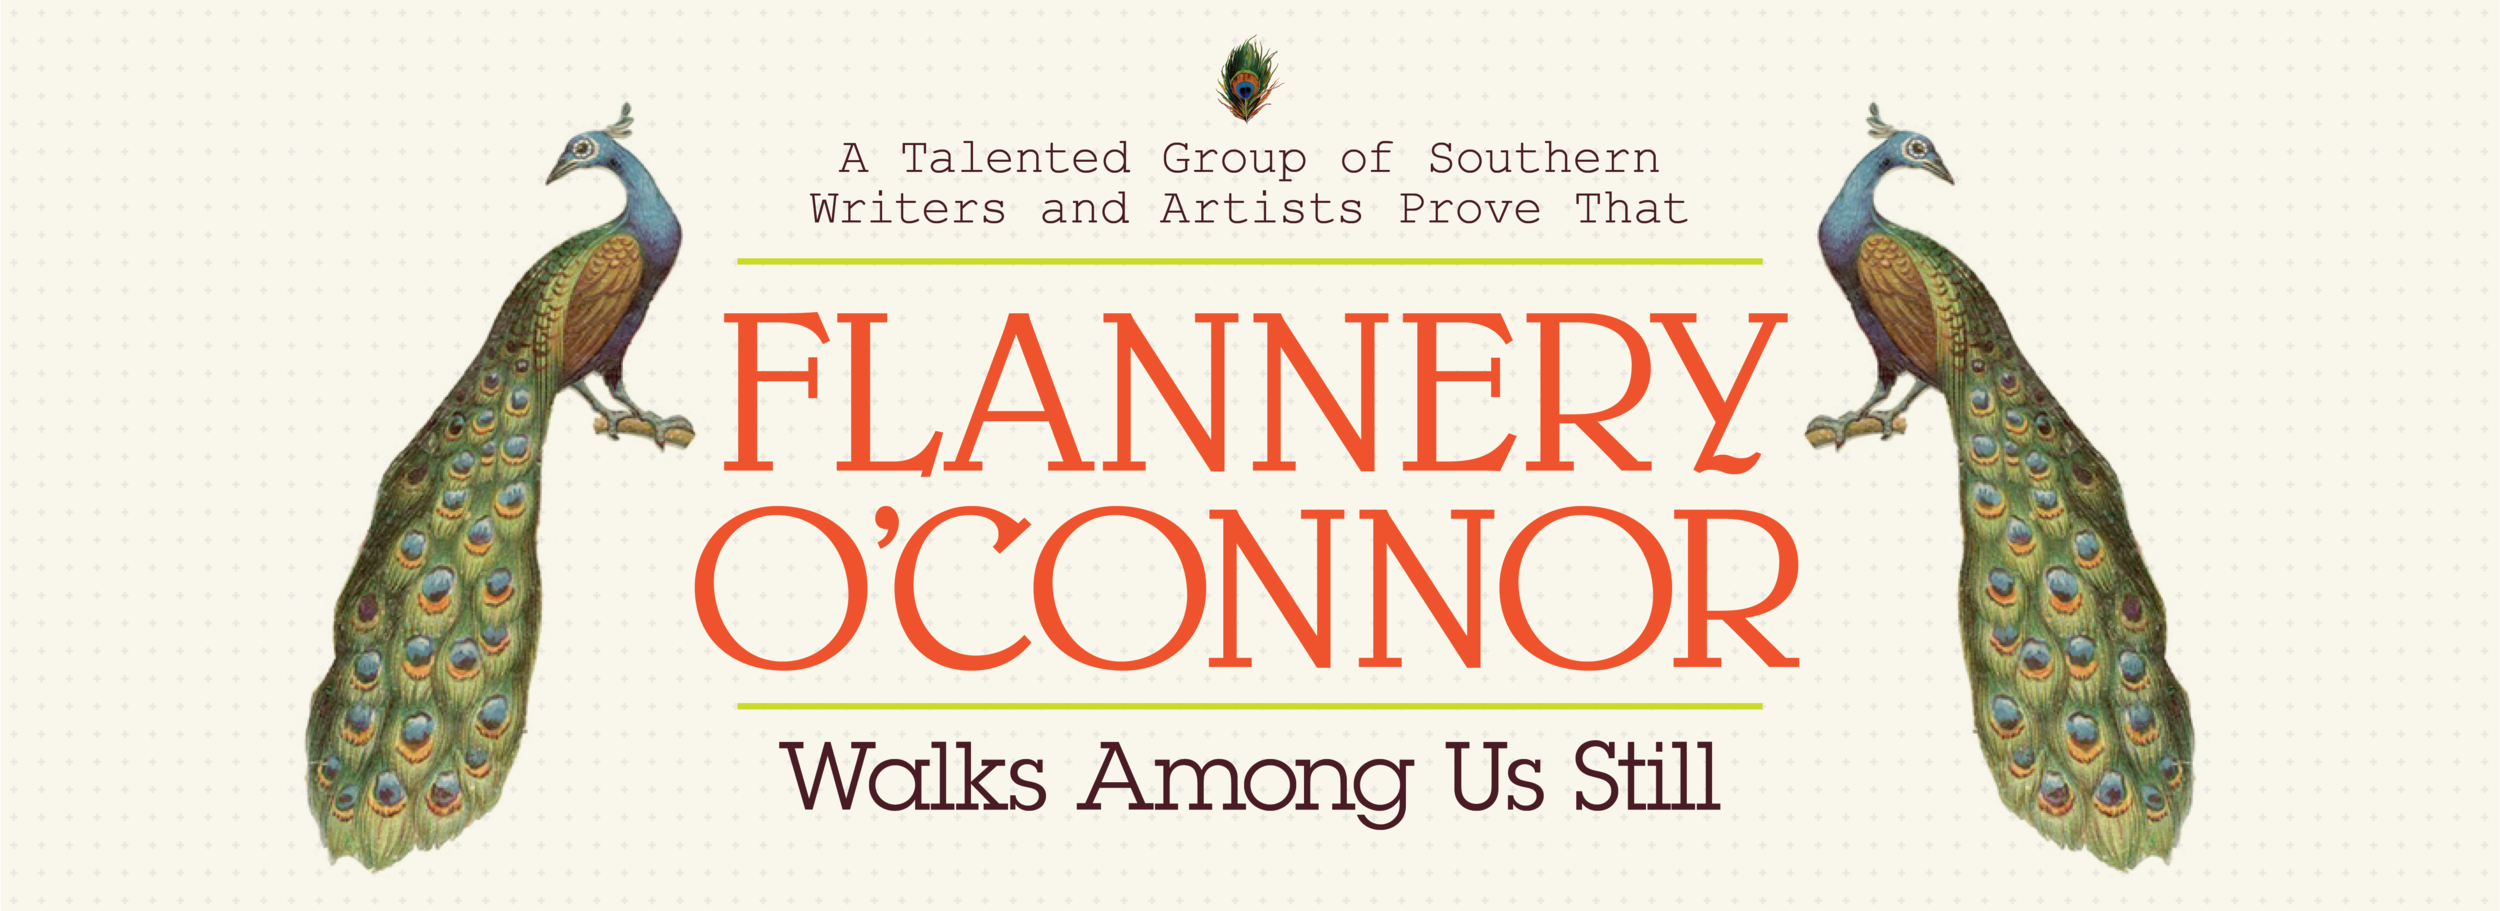 flannery o connor walks among us still the bitter southerner flannery o connor walks among us still